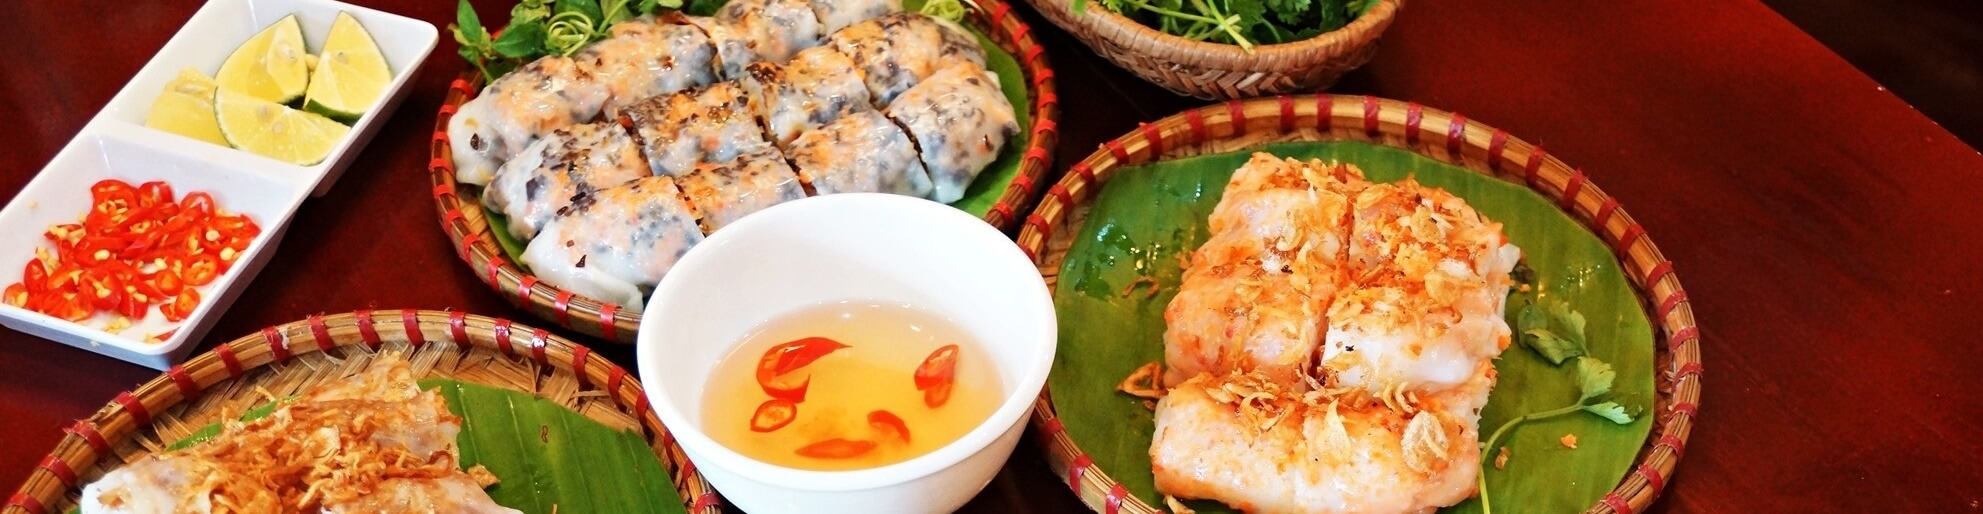 Cuisine Tours Vietnam Culinary Tours Private Food Tours In Vietnam